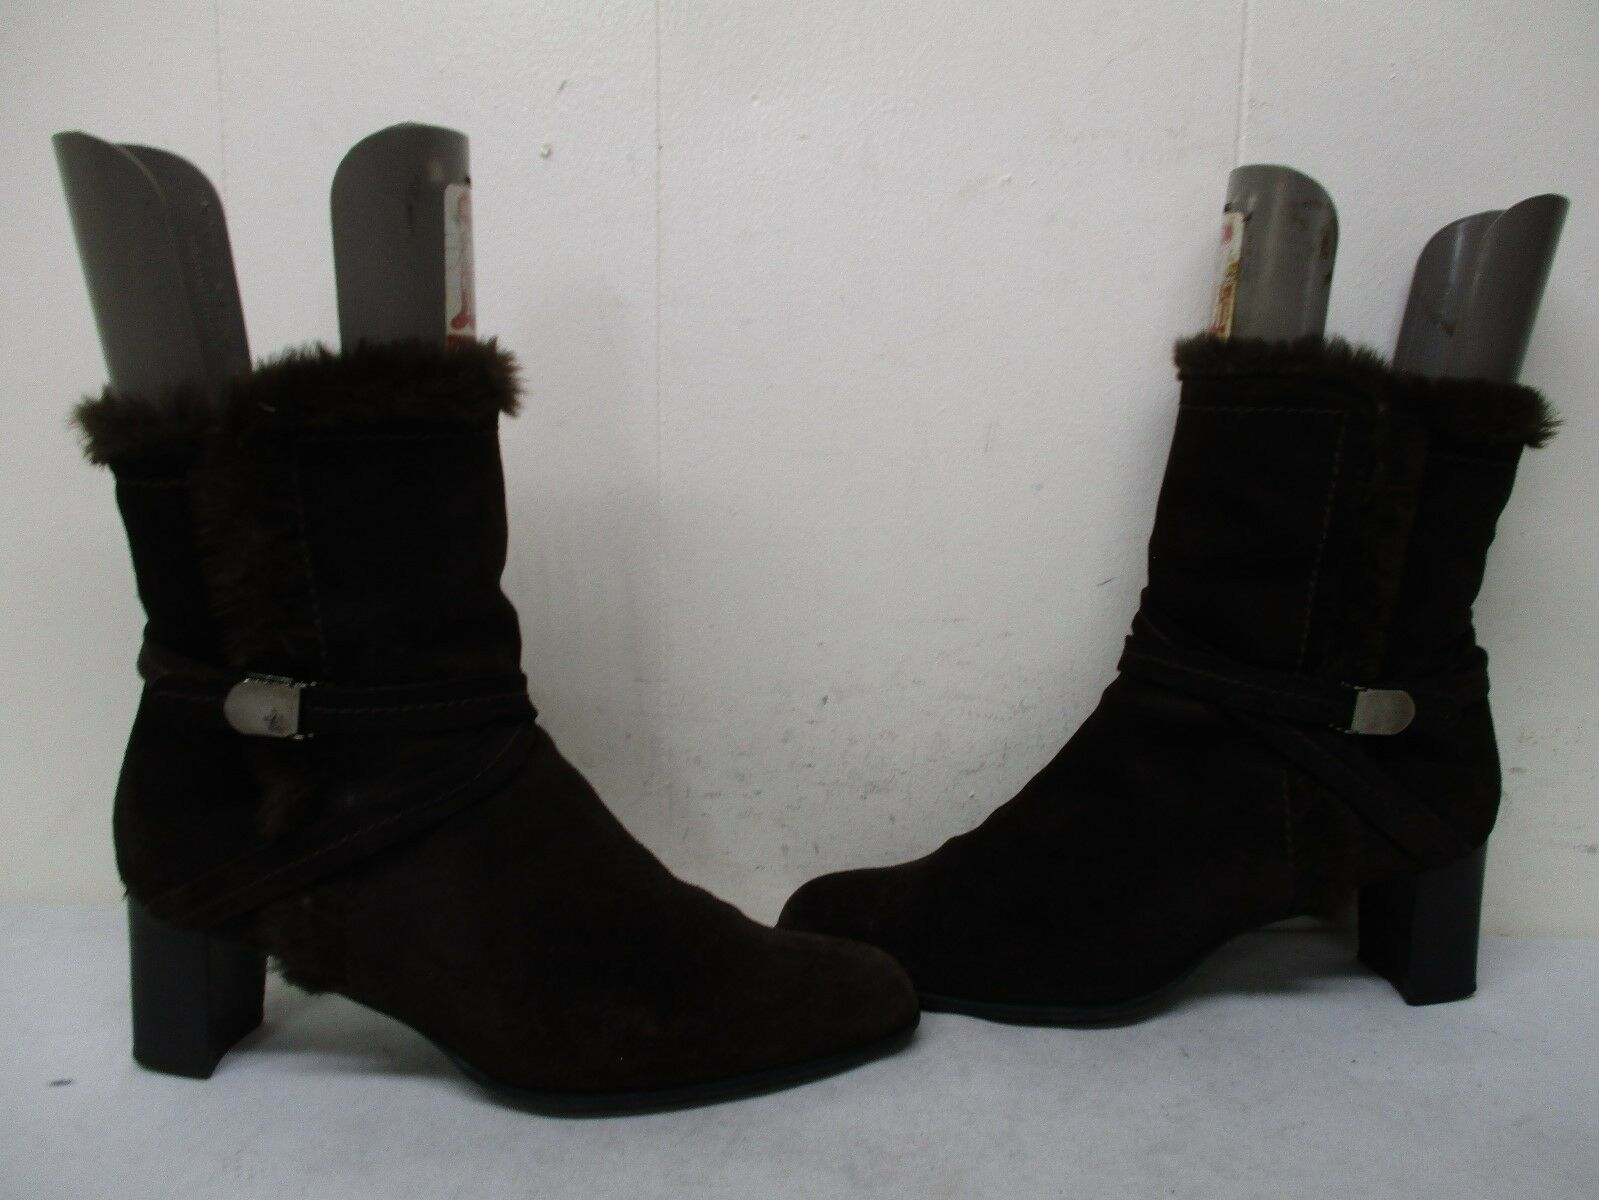 STUART WEITZMAN Brown Suede Leather Faux Fur Lined Zip Ankle Boots Size 10.5 M